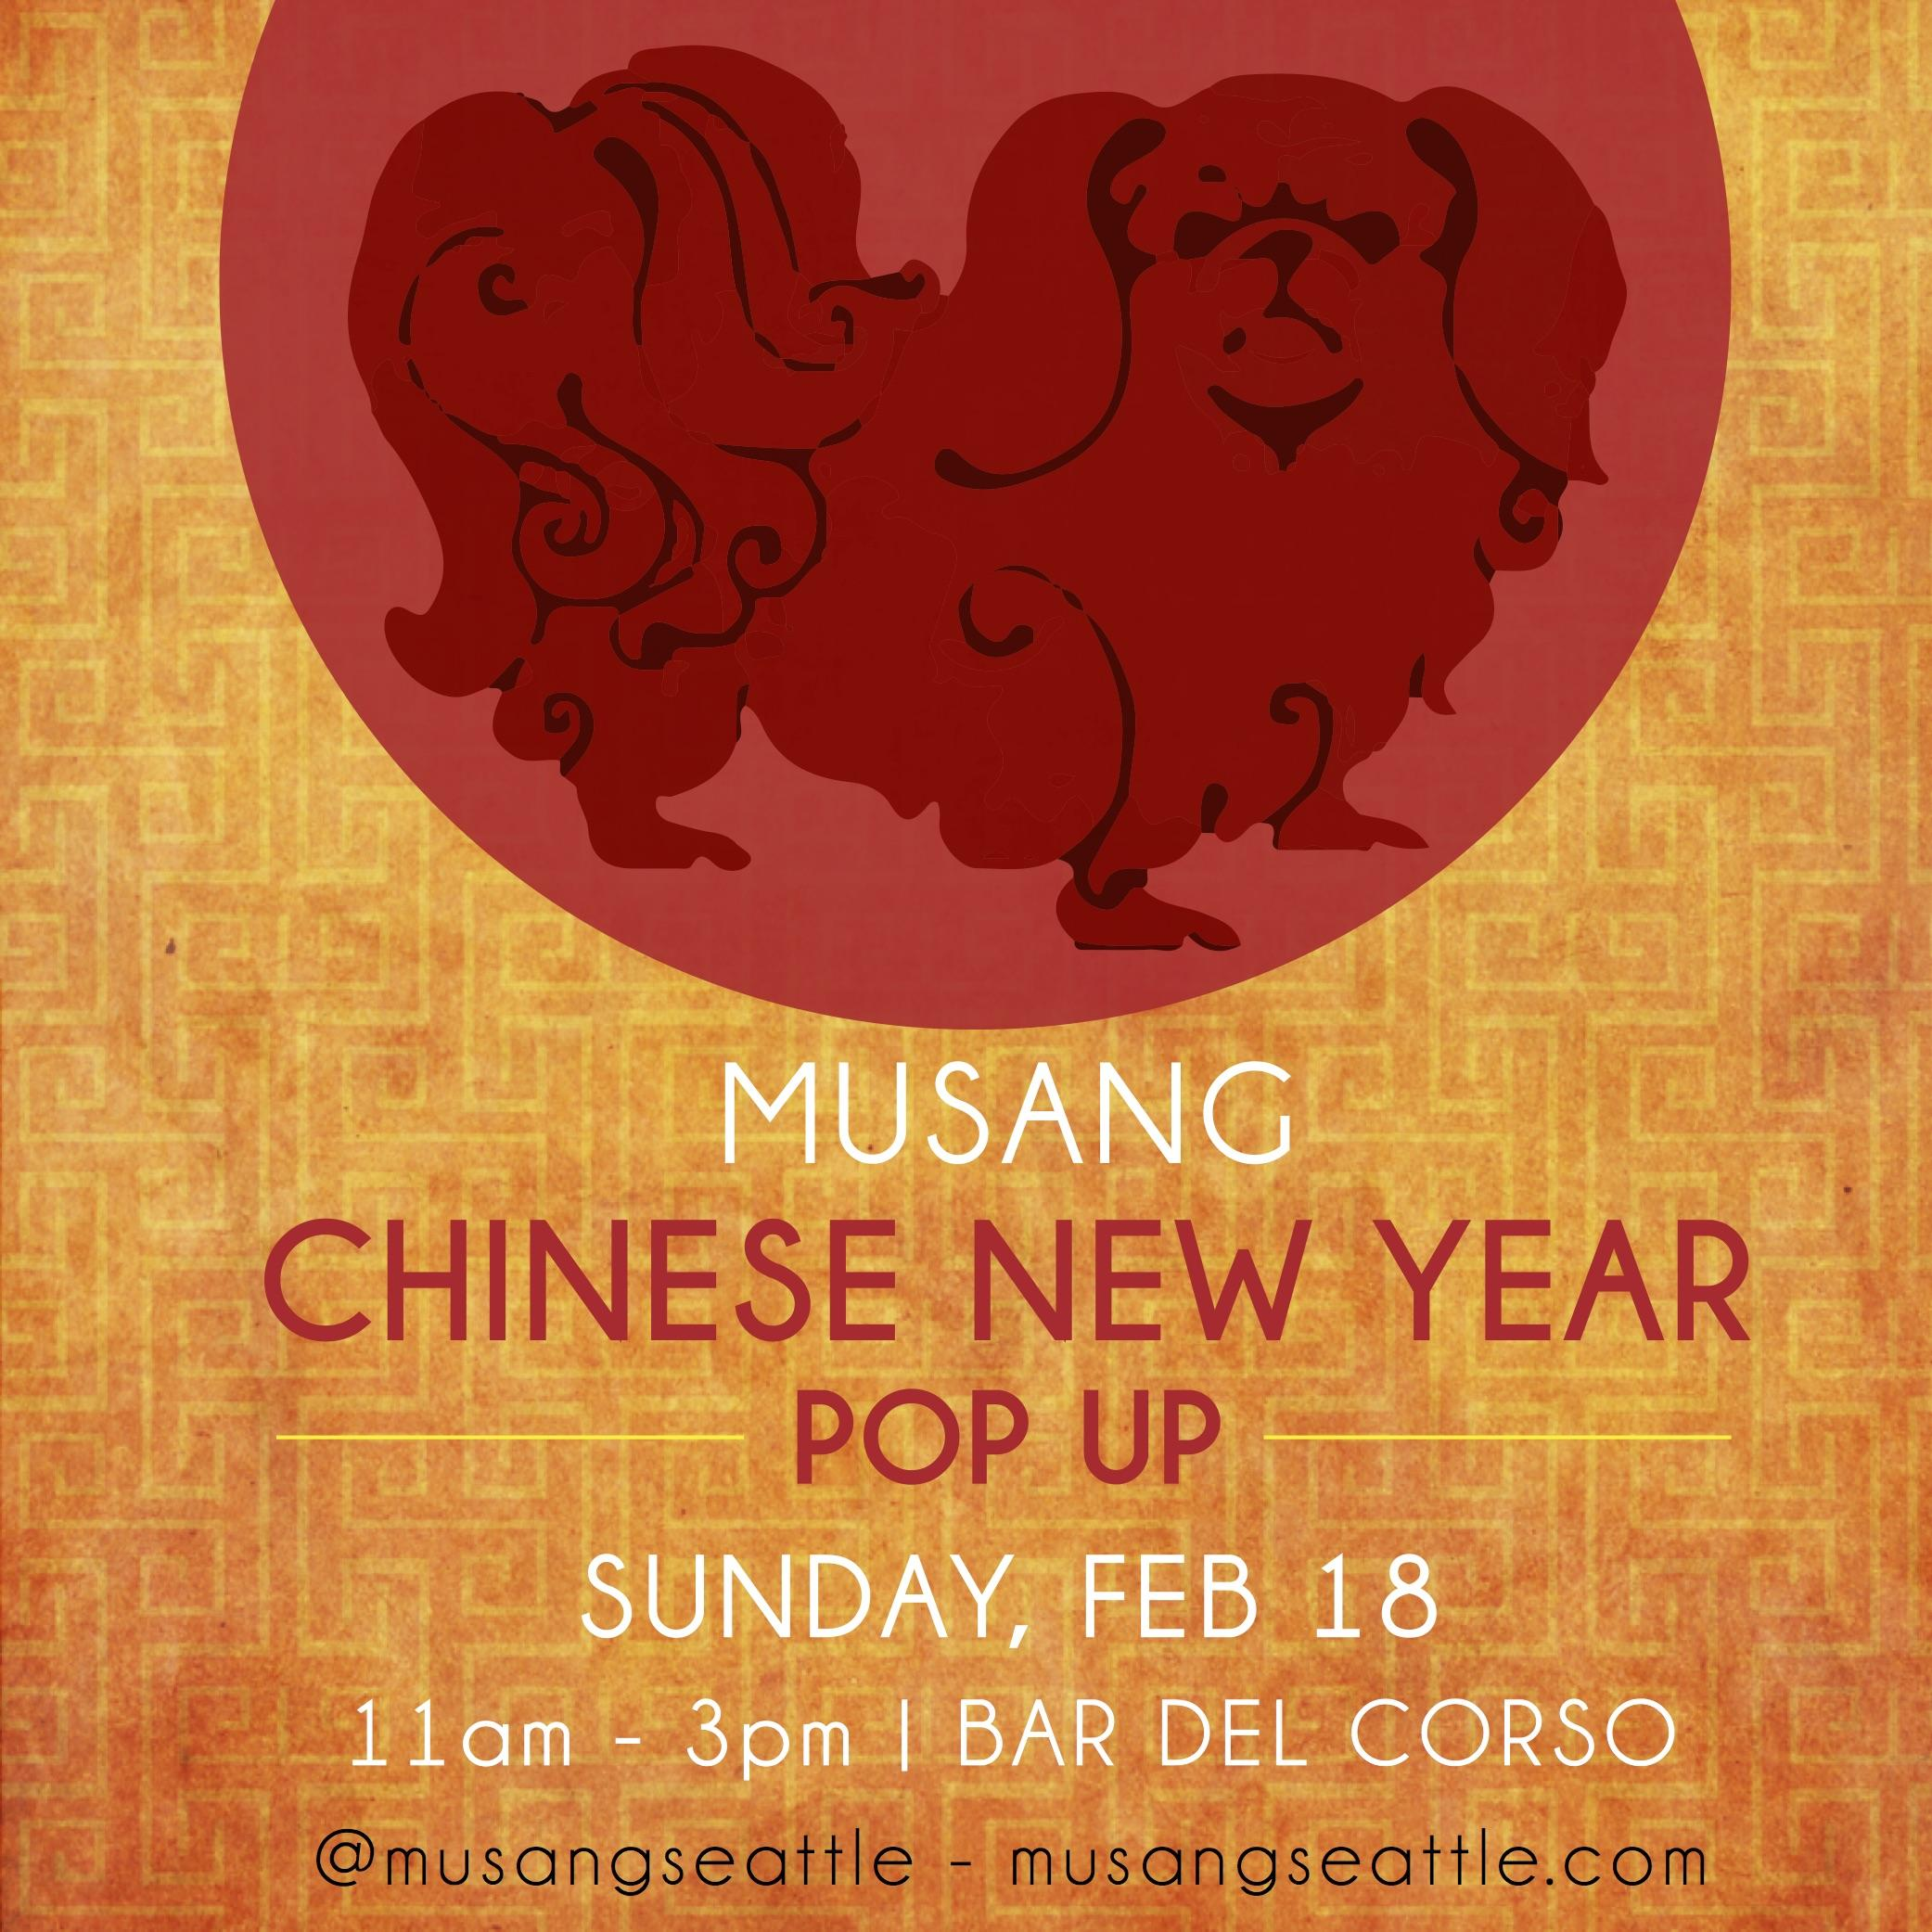 Brunch with Musang - Chinese New Year Pop Up